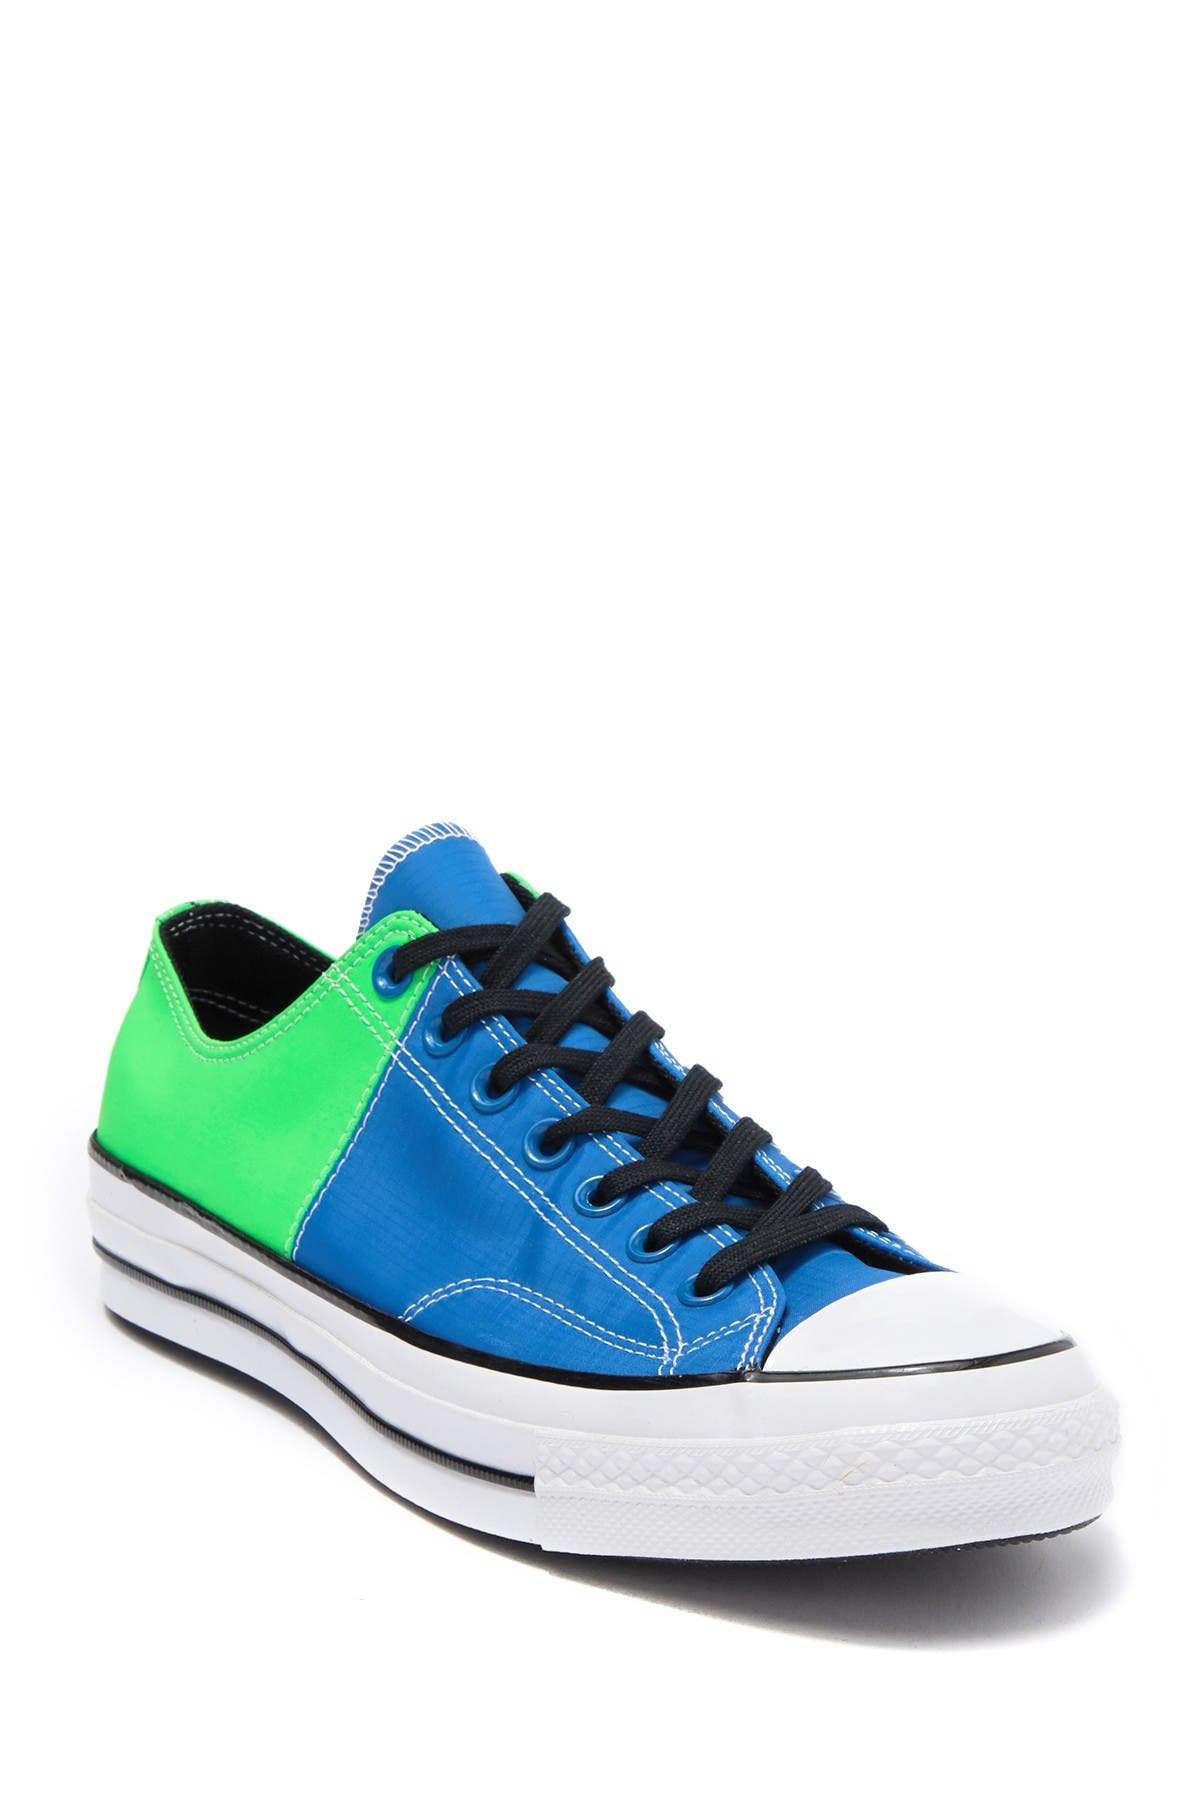 Image of Converse Chuck Taylor® All Star® 70 Low Top Sneaker